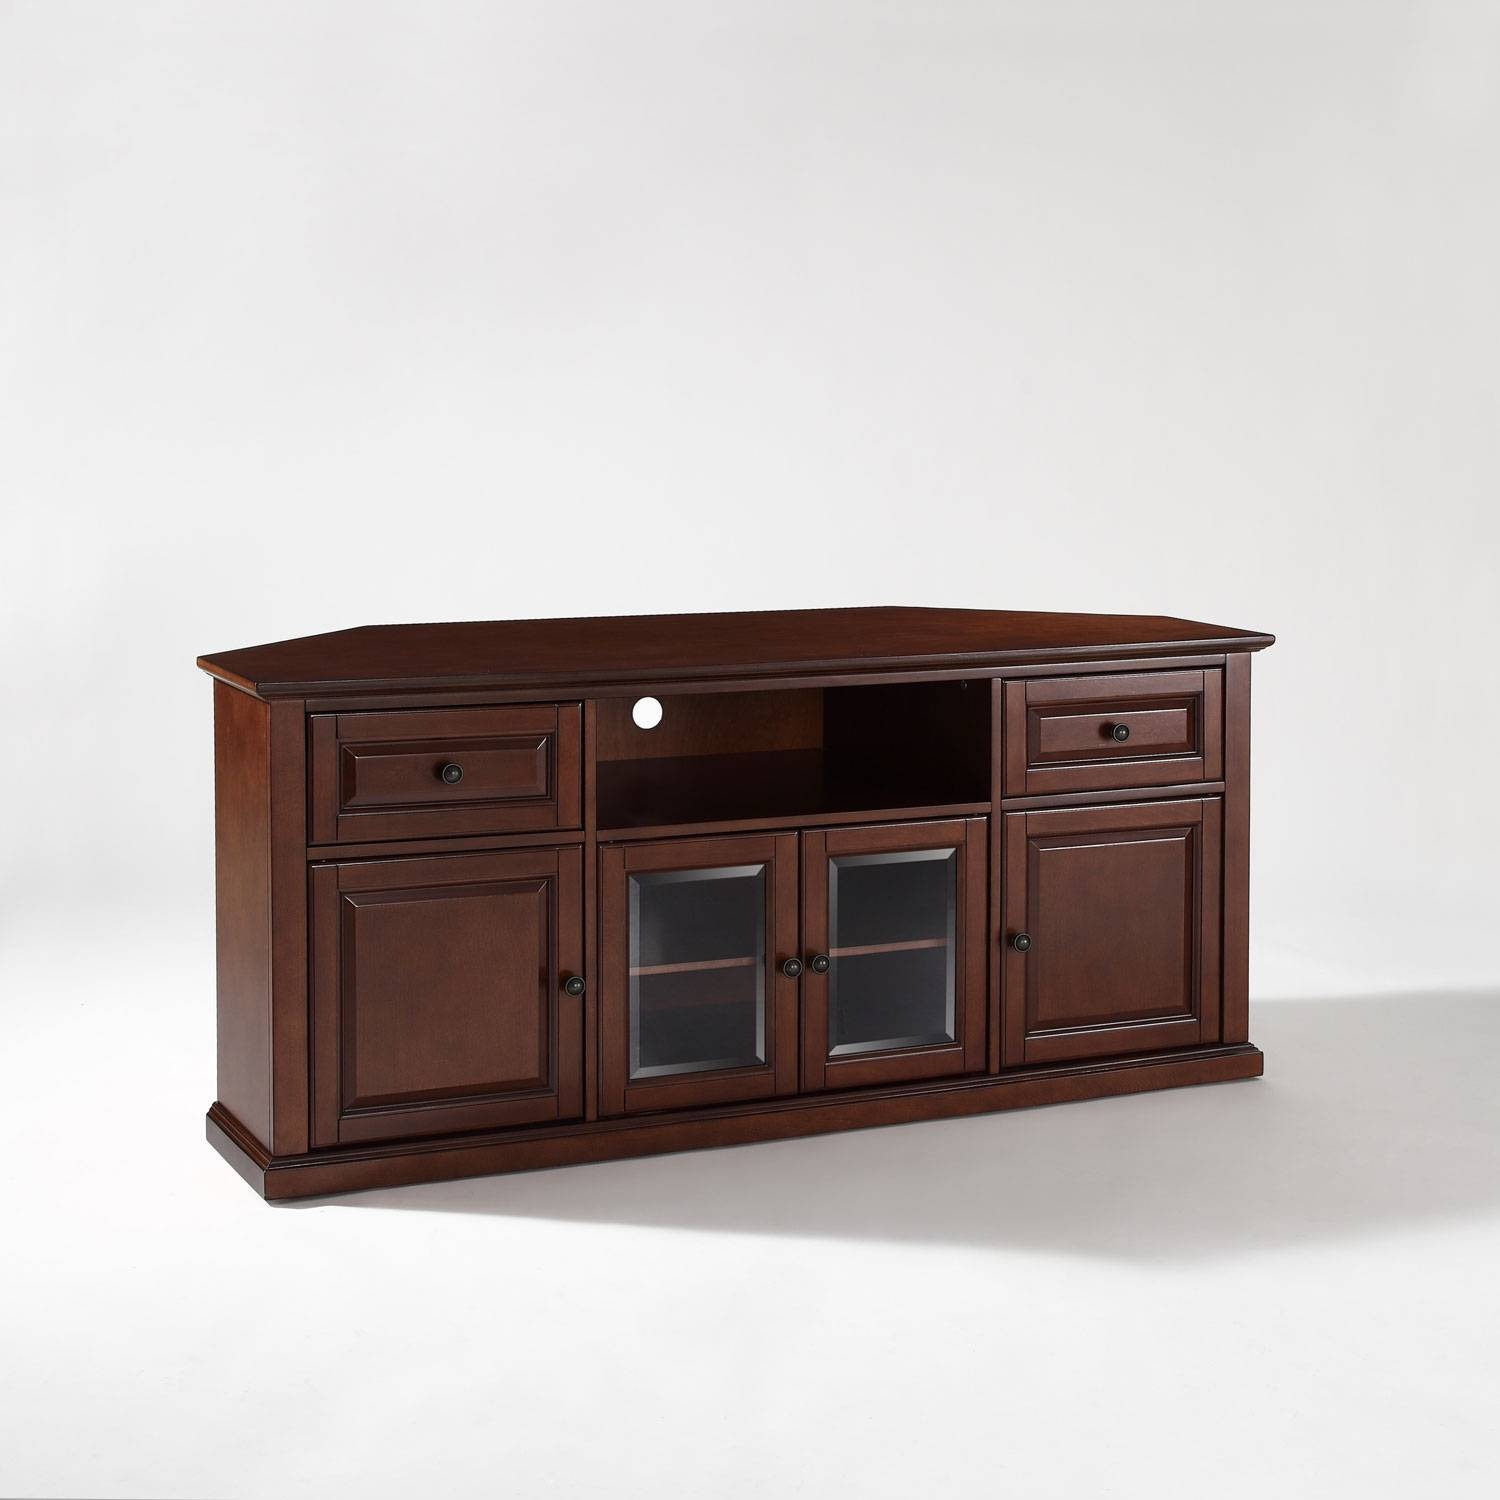 Tv Stands & Cabinets On Sale | Bellacor within Retro Corner Tv Stands (Image 12 of 15)